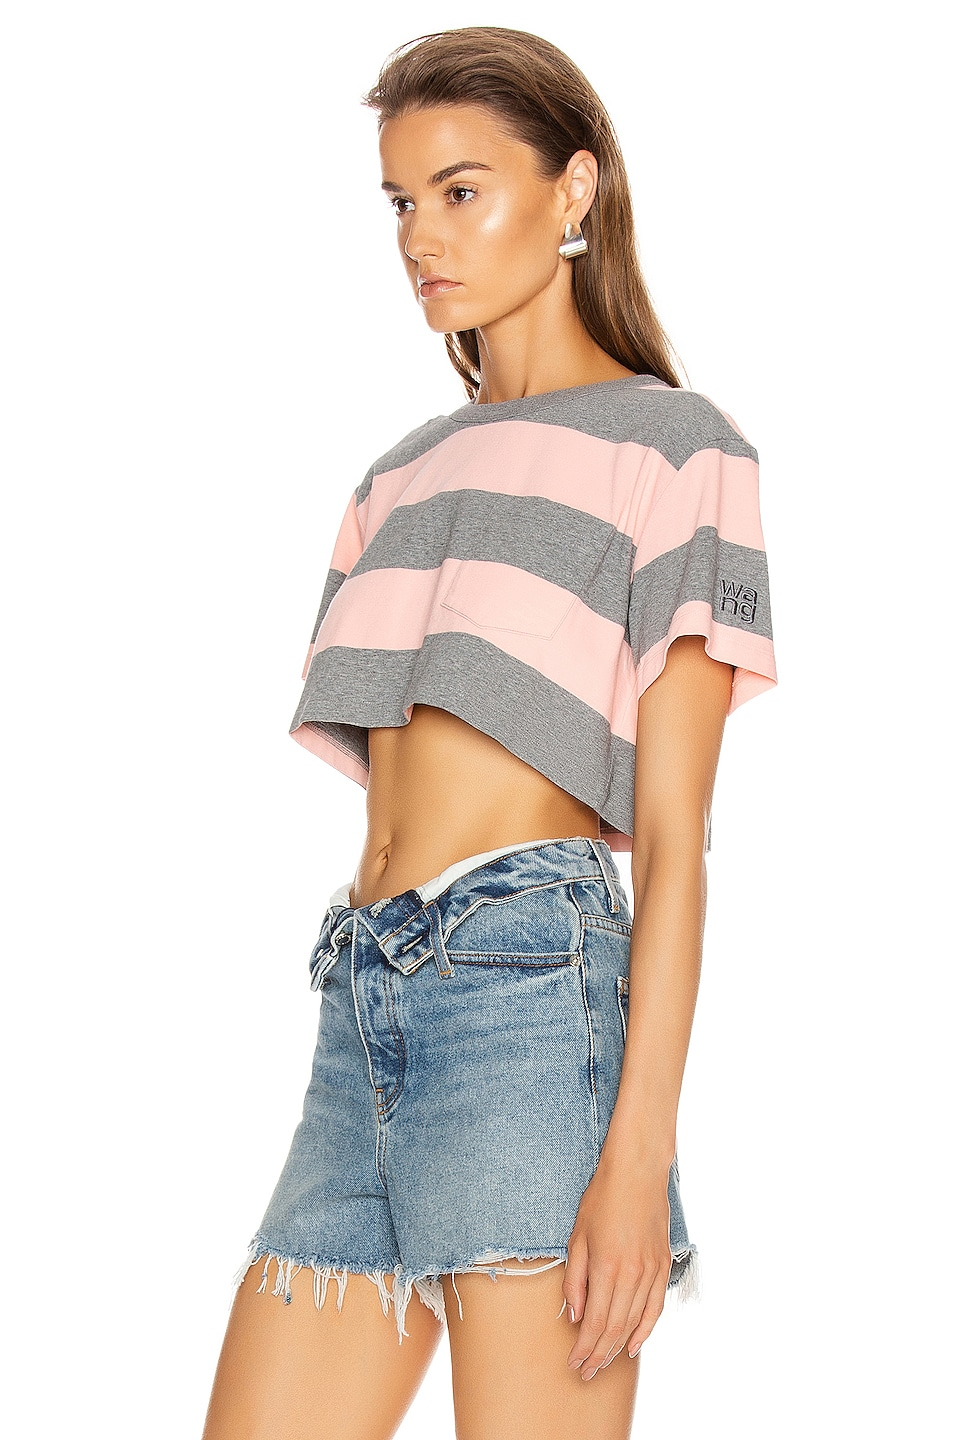 Image 3 of T by Alexander Wang Wash and Go Wide Stripe Crop in Charcoal & Blush